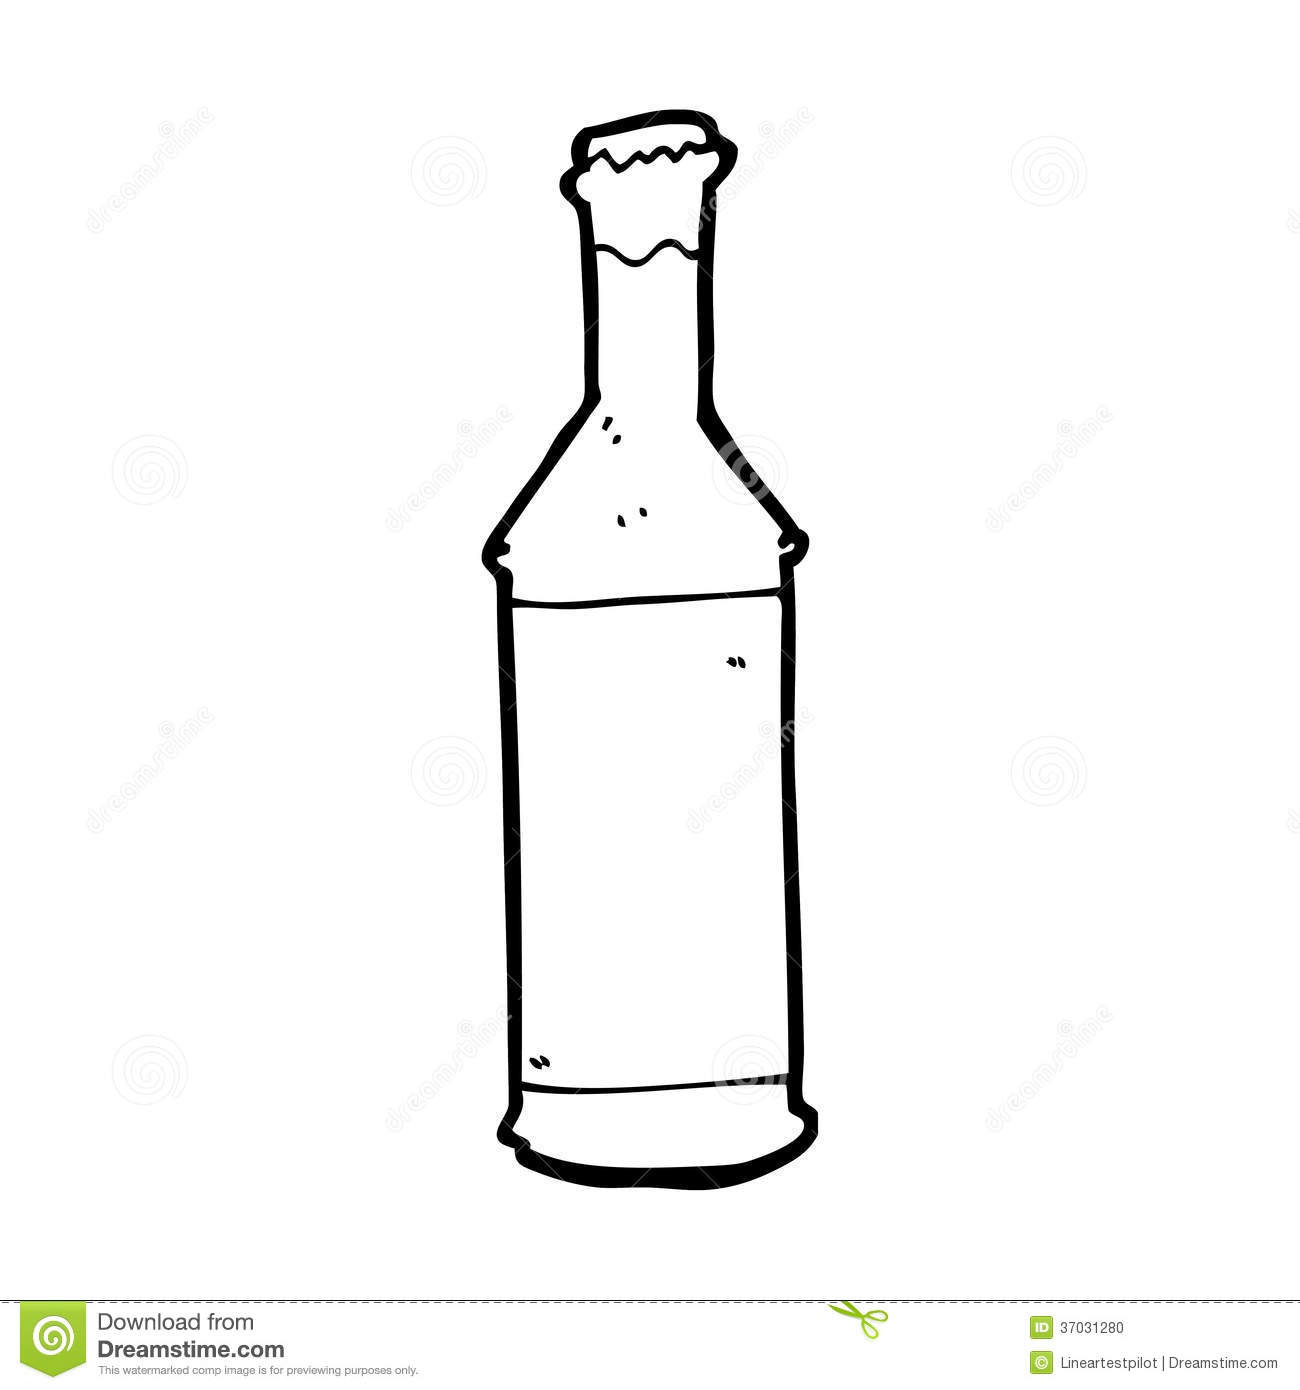 One Line Art Beer : Cartoon beer bottle stock illustration of